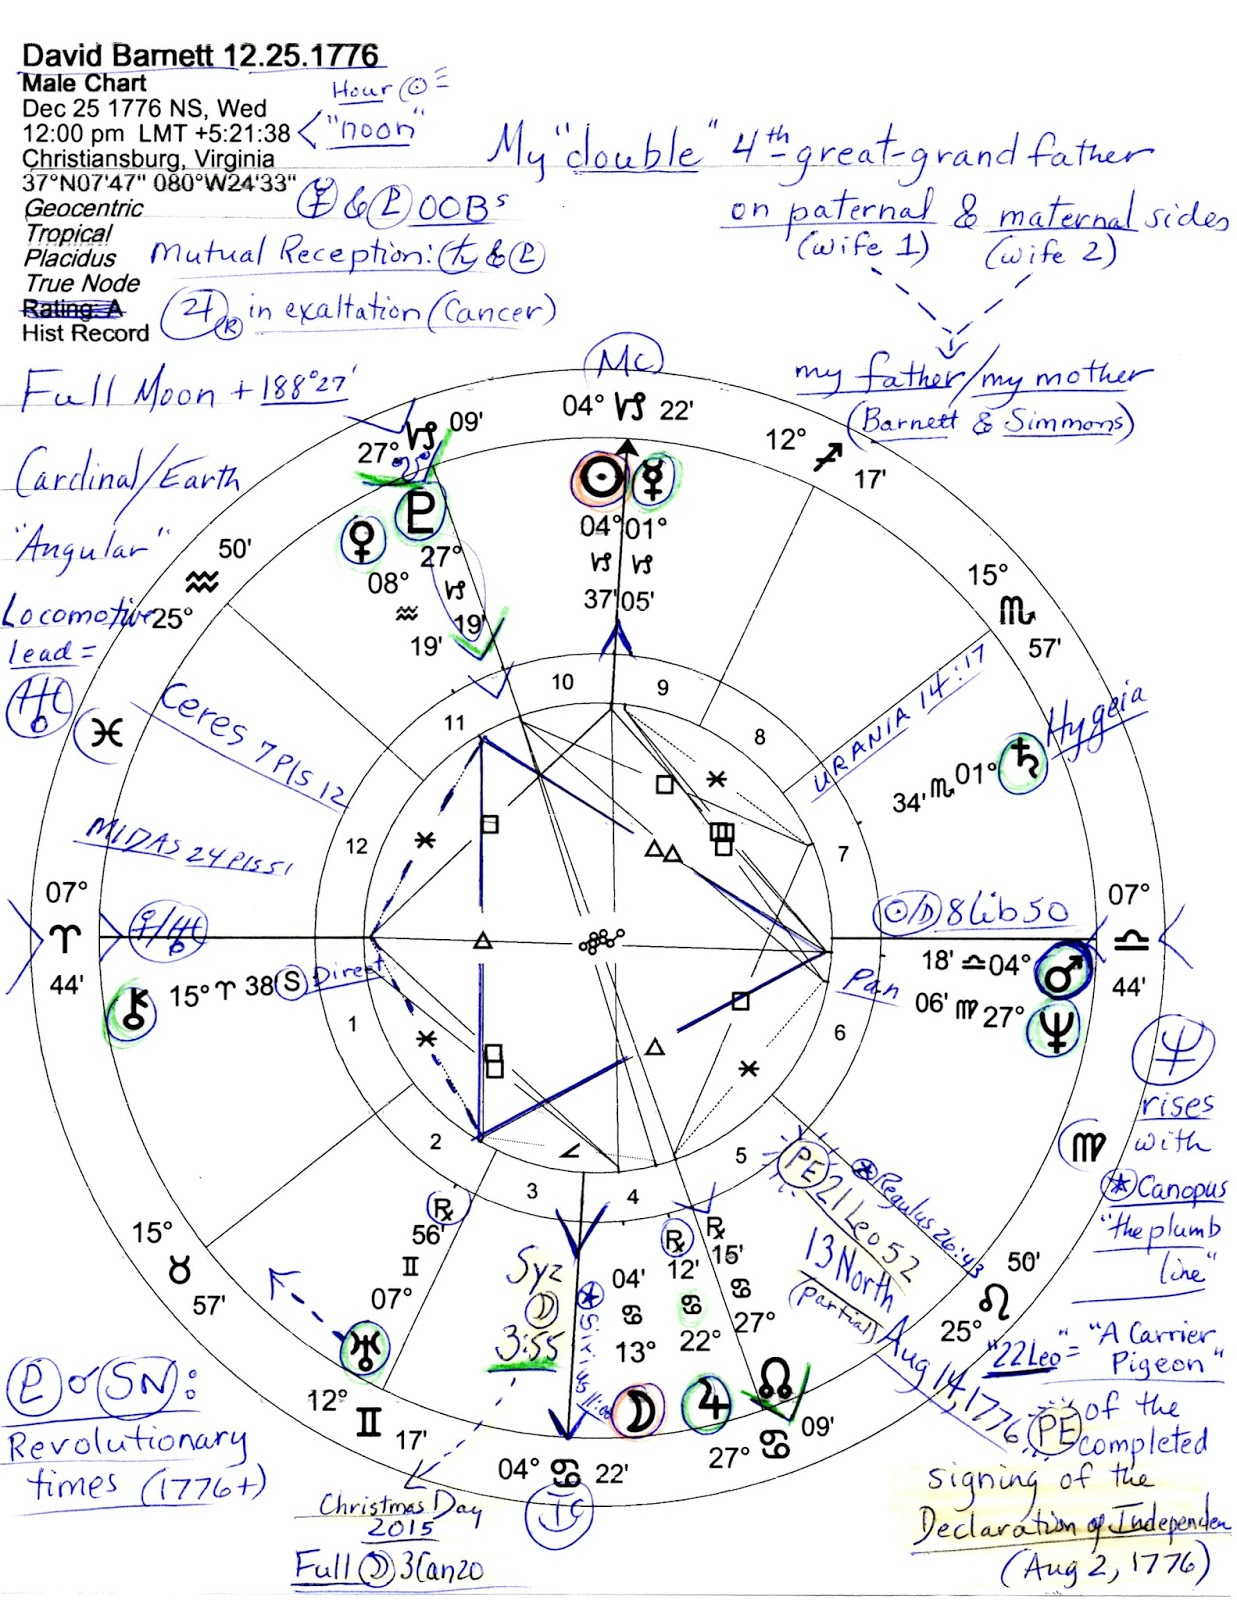 Stars over washington december 2015 heres a noon chart for my double 4th great grandfather david barnett birth hour unknown who was born in christiansburg virginia and this double nvjuhfo Images